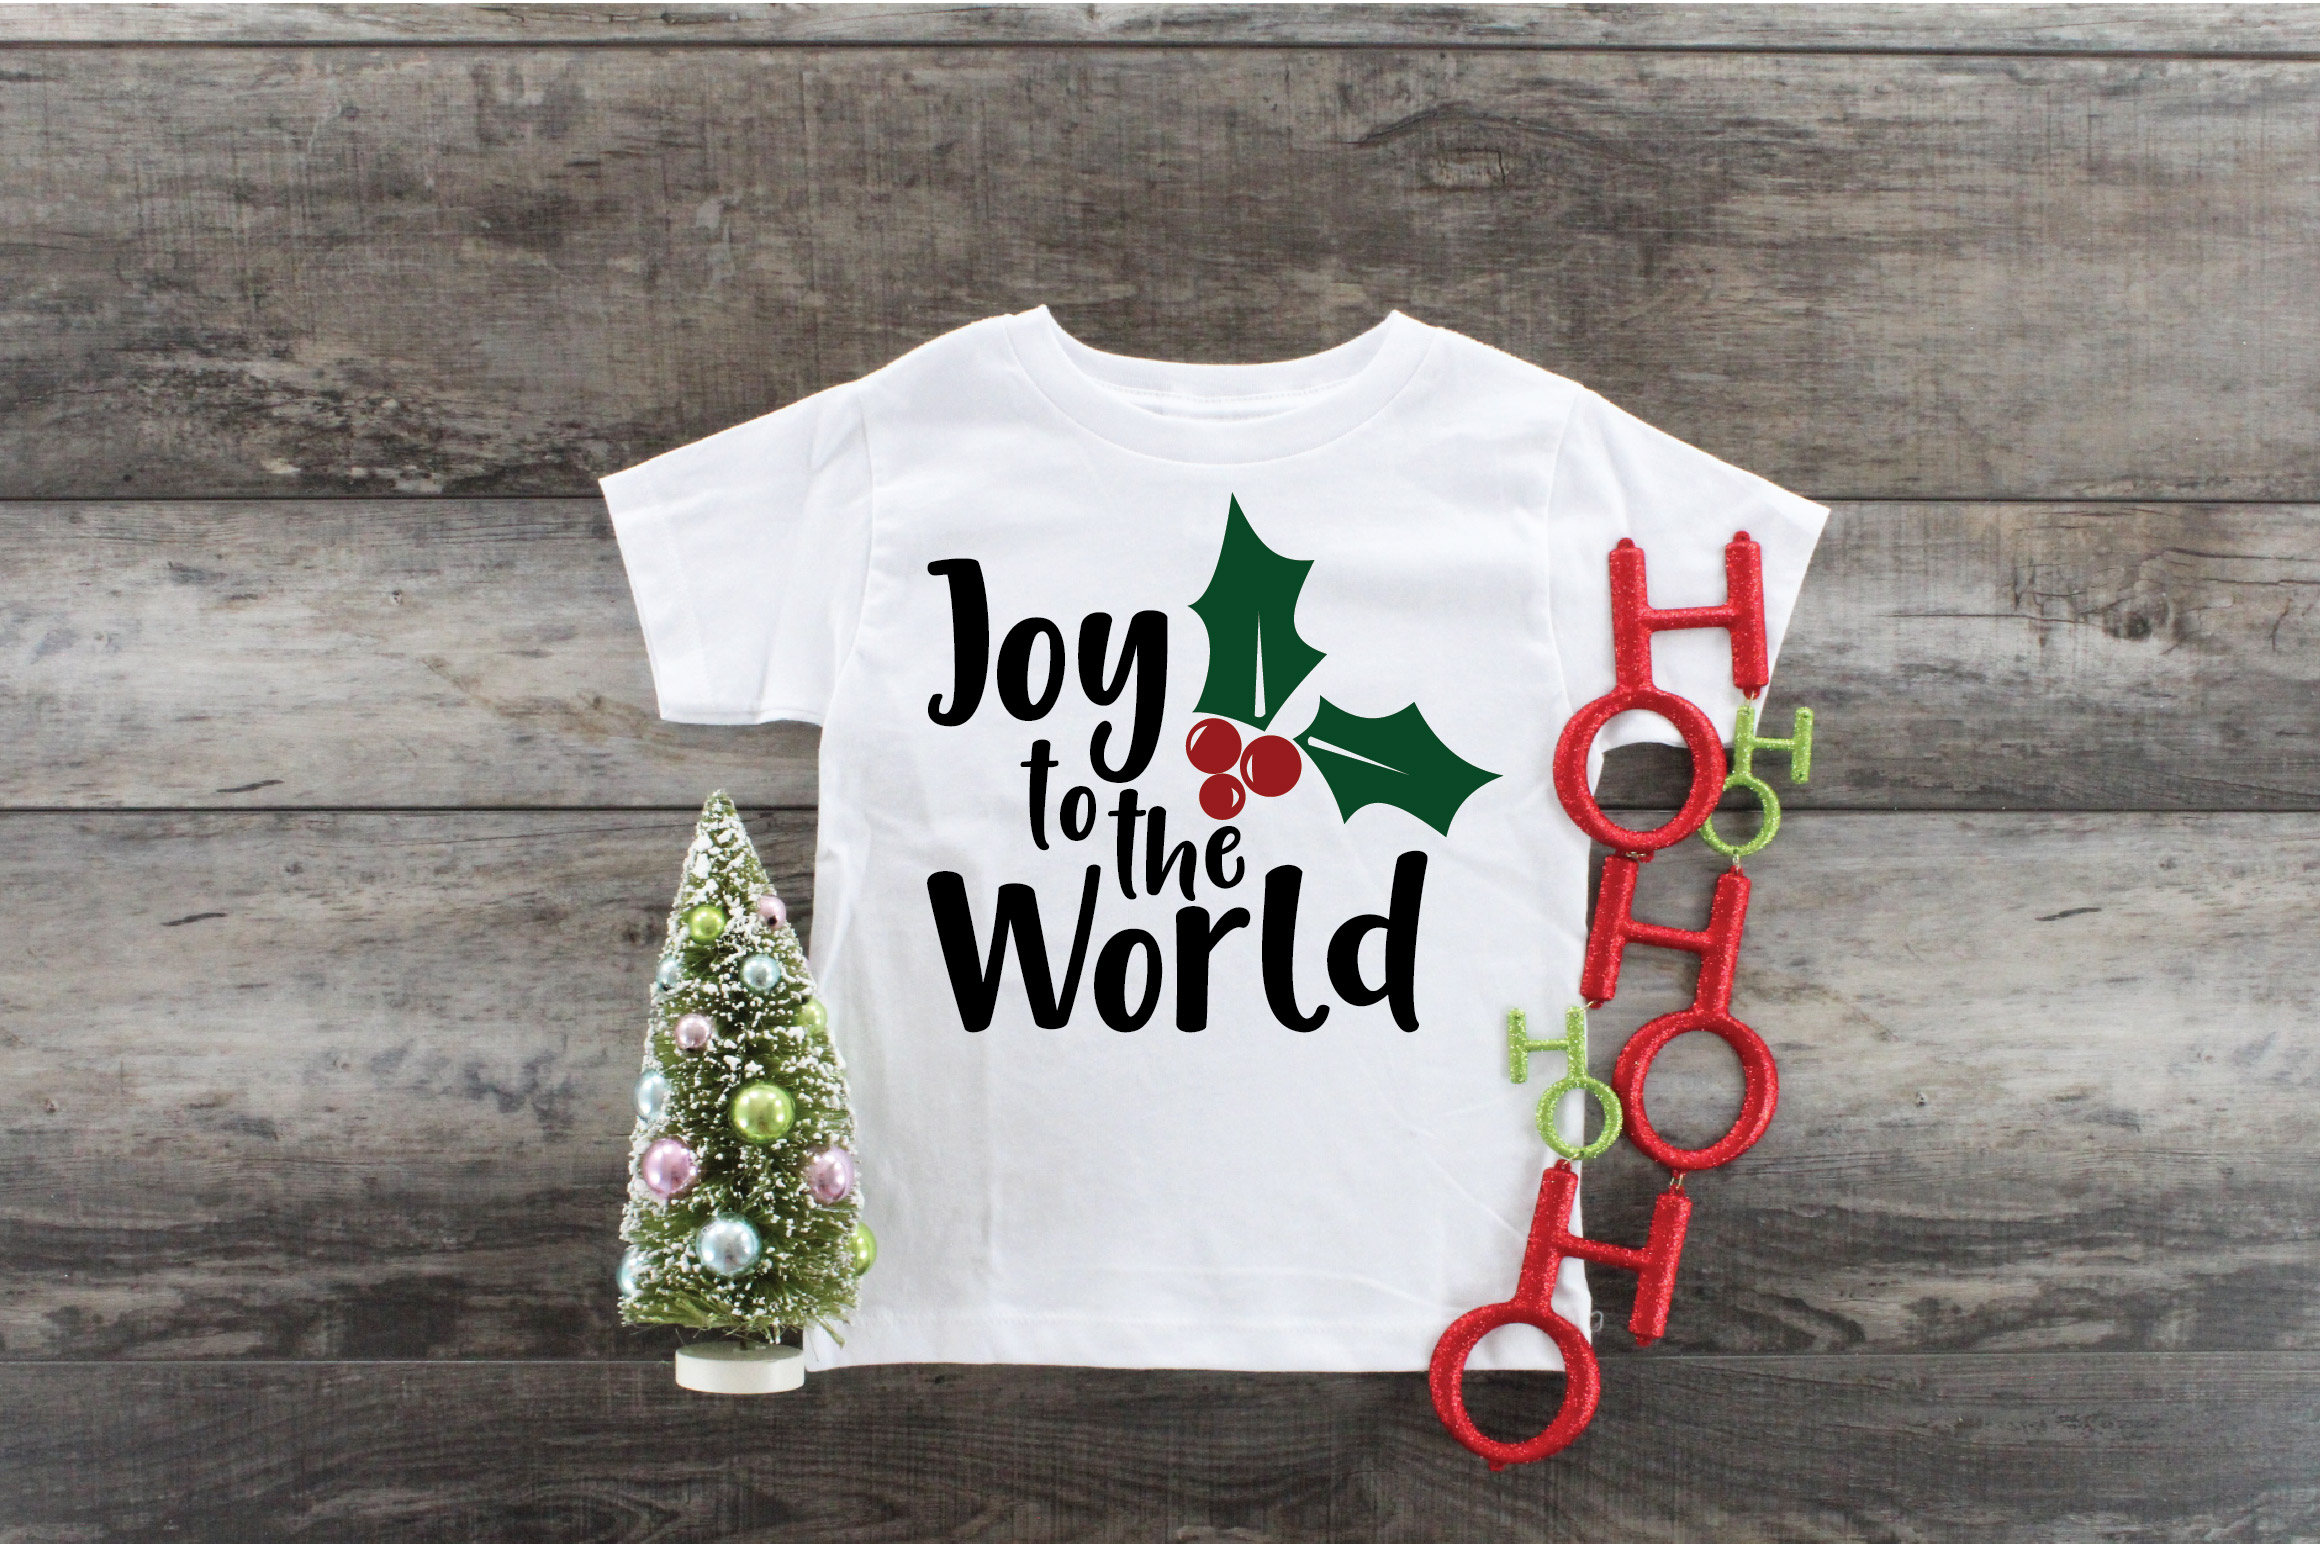 Joy to the World SVG Cut File - Christmas SVG example image 7